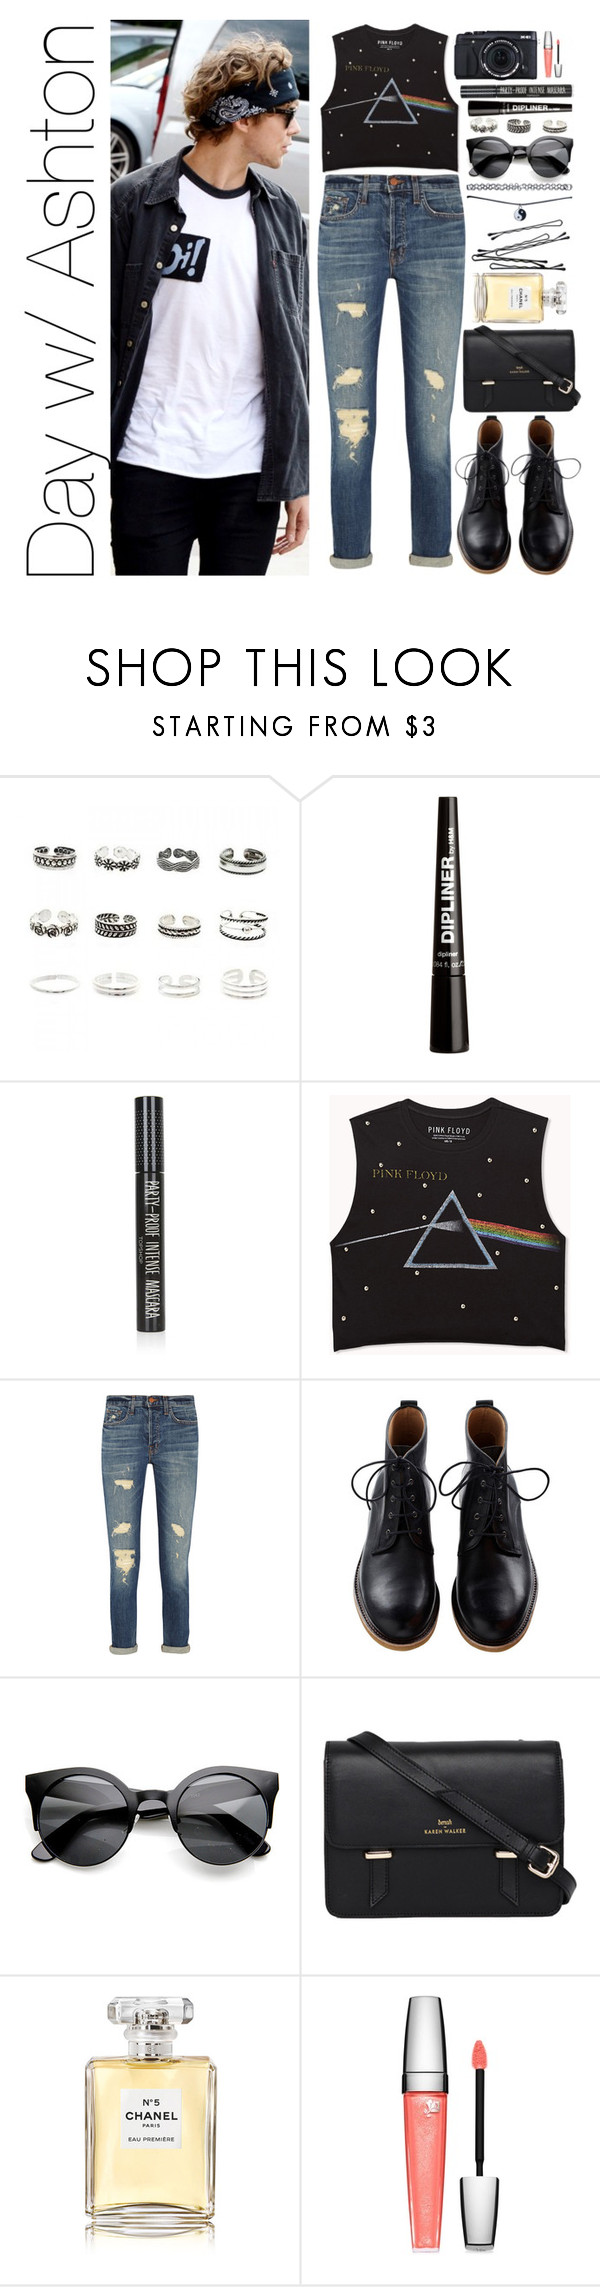 """""""Day w/ Ashton"""" by crazymofo4ever ❤ liked on Polyvore featuring Retrò, H&M, Topshop, Forever 21, J Brand, Sloane, Chanel, Lancôme, BOBBY and Wet Seal"""